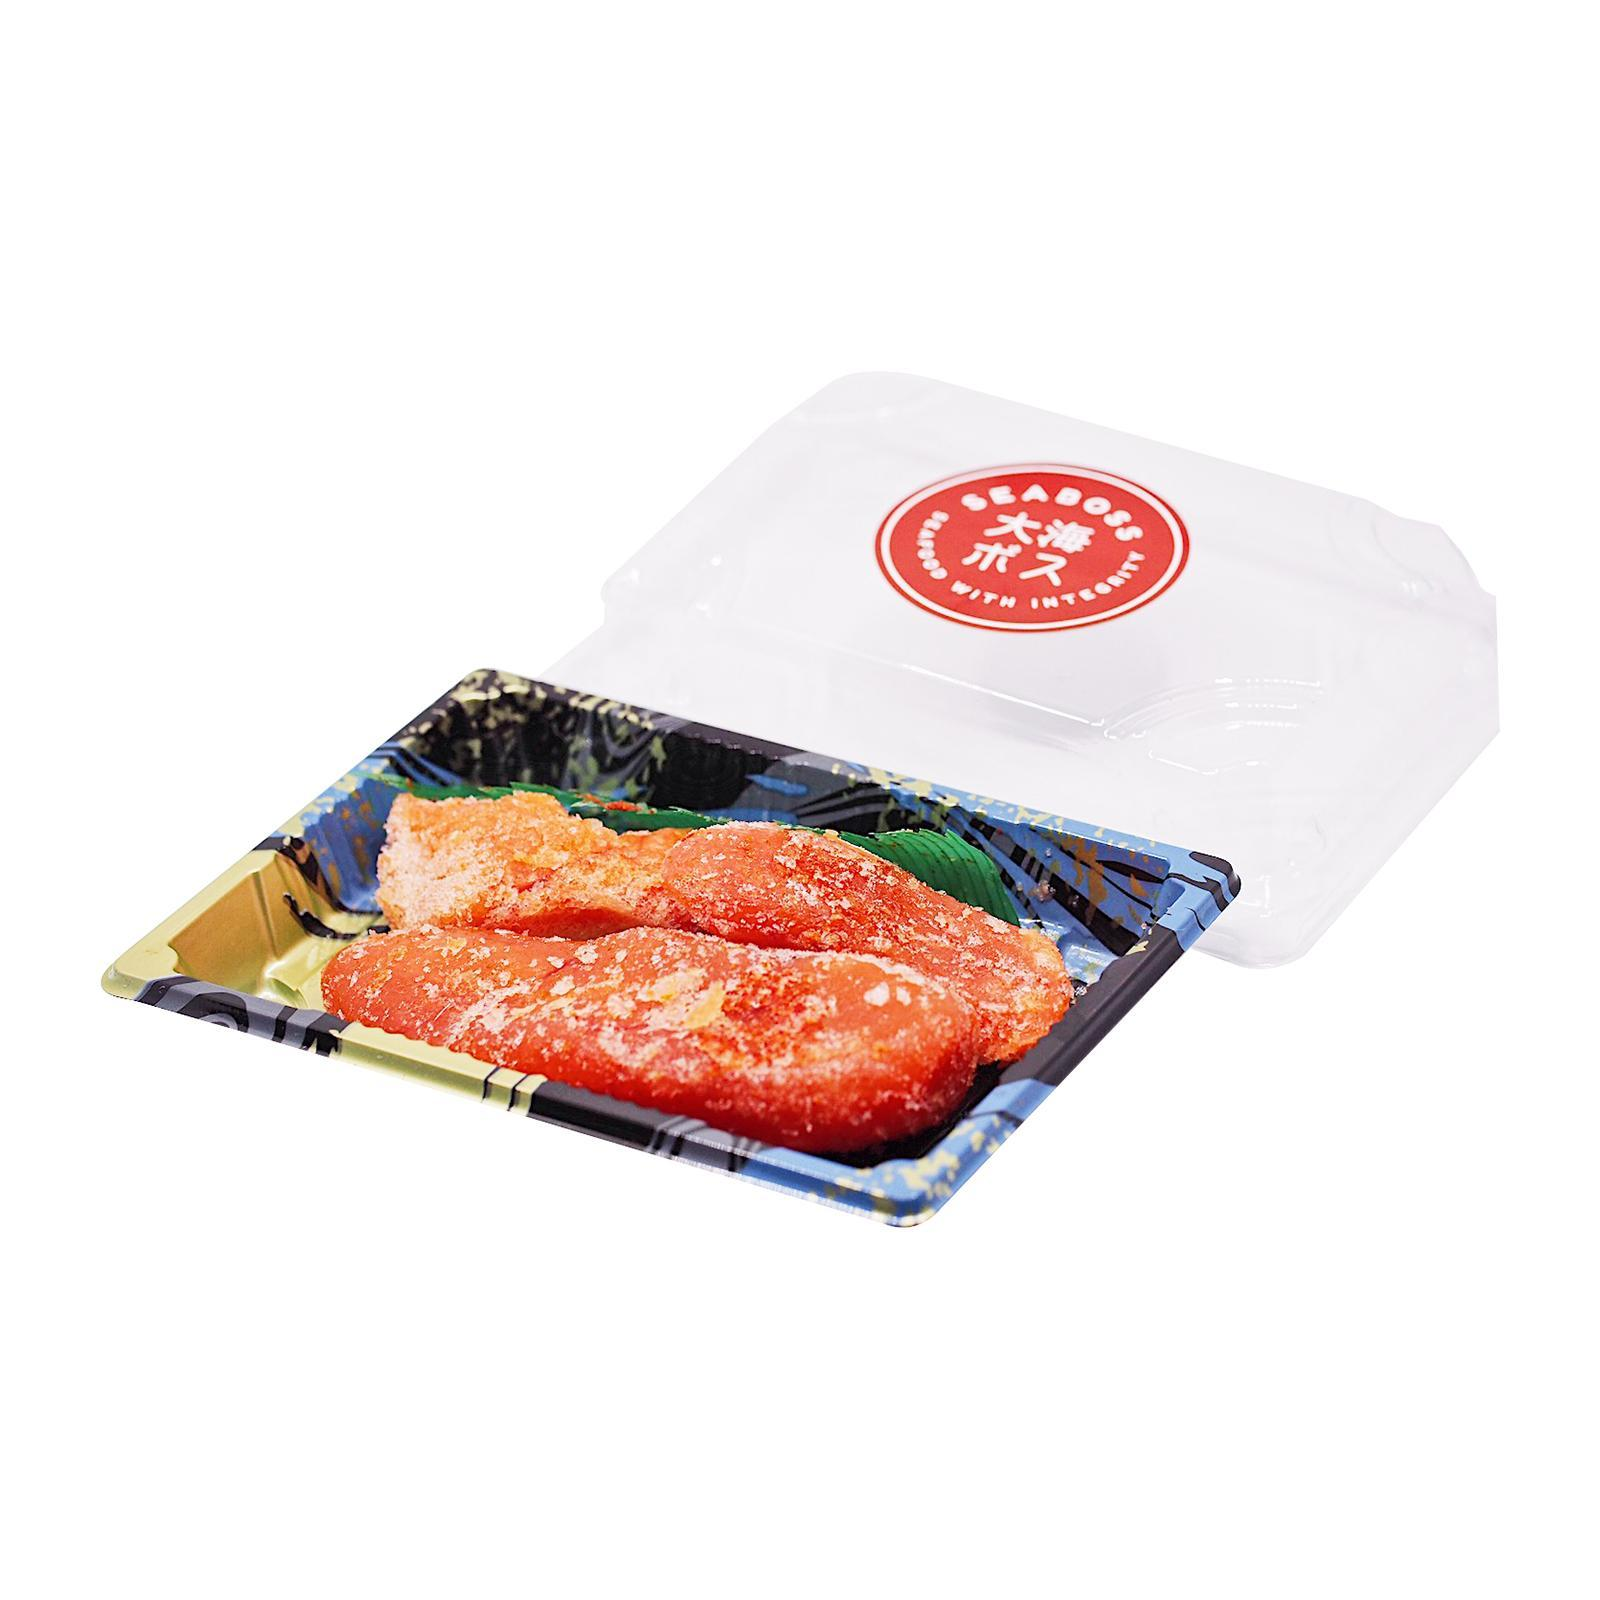 SEABOSS Mentaiko in Sac (Spiced Cod Roe) - Frozen